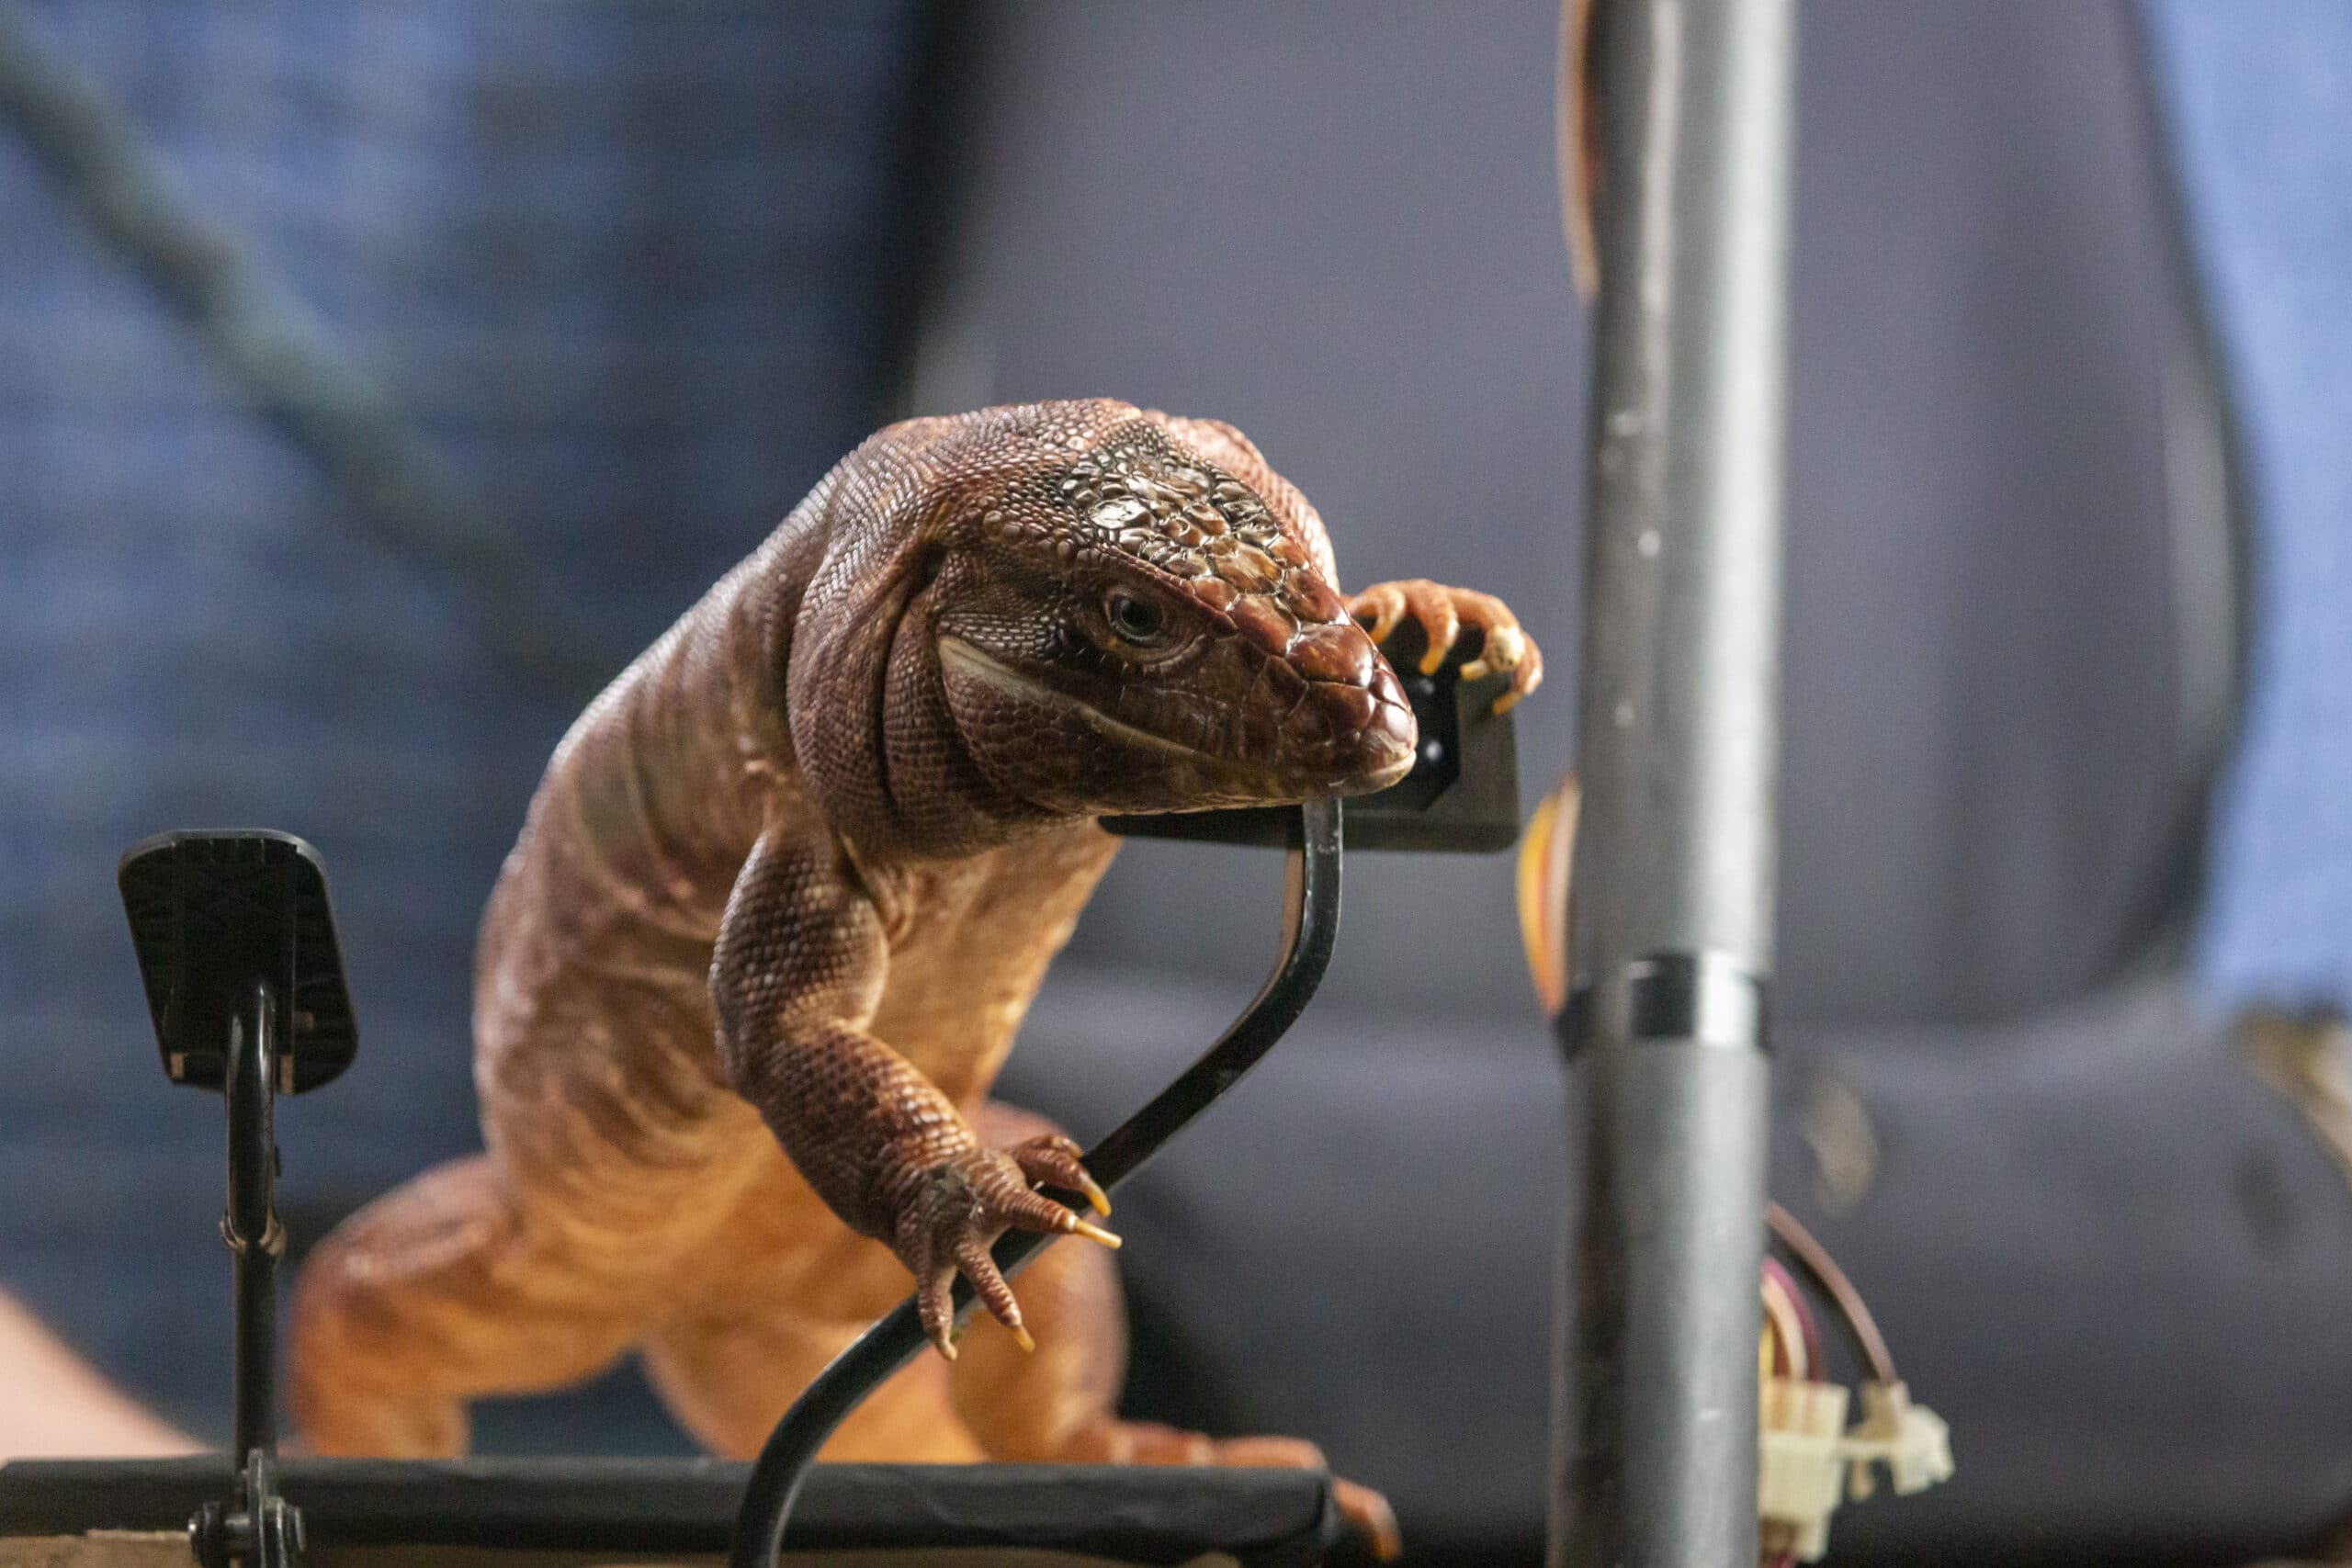 Cats & Dogs 3 Lizard. Discover who has the upper paw in Cats & Dogs 3: Paws Unite!,the next feature-length installment of the popular Cats & Dogs franchise from Warner Bros. Home Entertainment. Available on Digital on September 15 and on both Blu-ray Combo Pack and DVD on October 13.